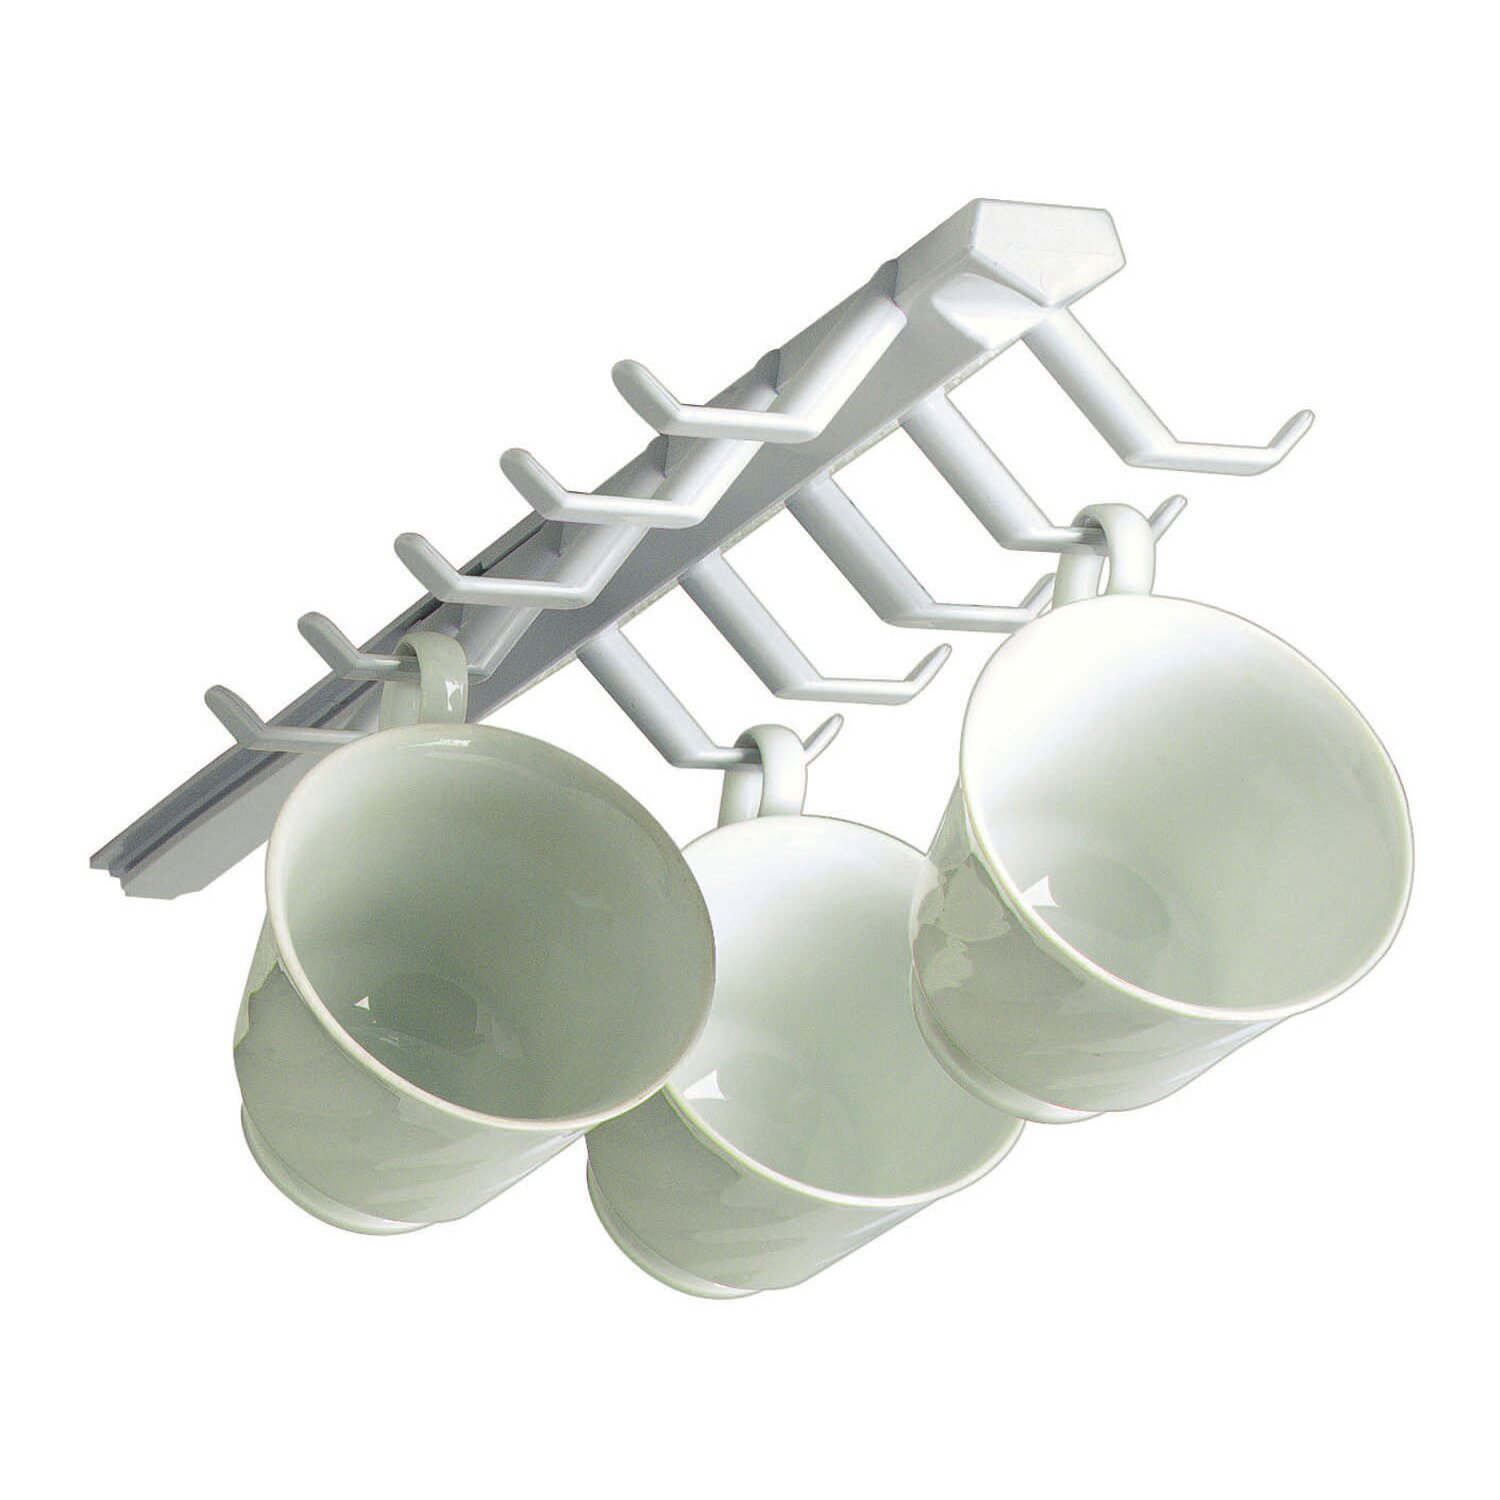 Coffee Cup Rack Under Cabinet Cabinet Organization Youll Love Wayfair